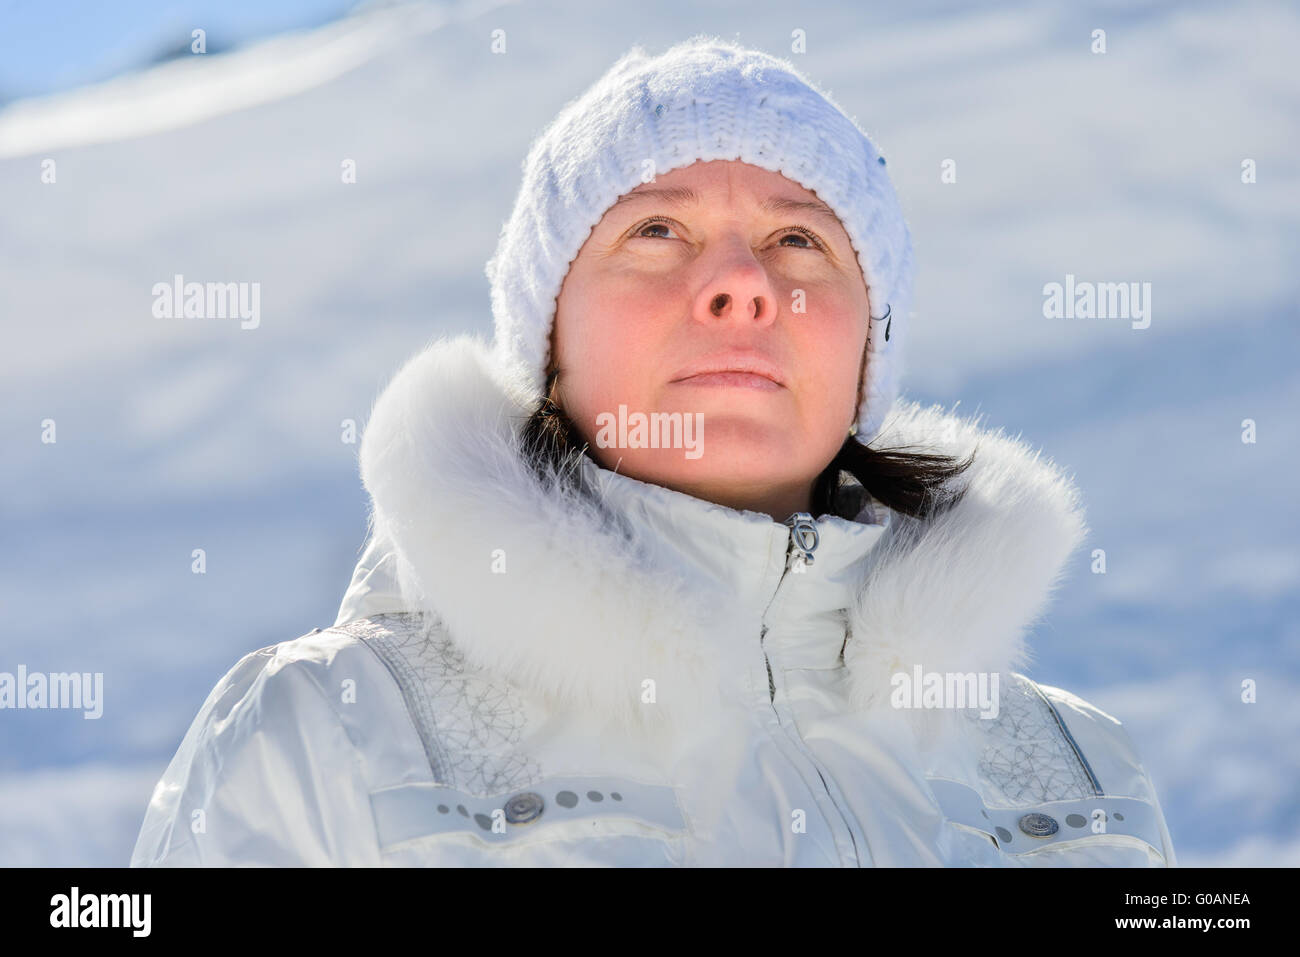 woman in ski suit on a background of mountains - Stock Image